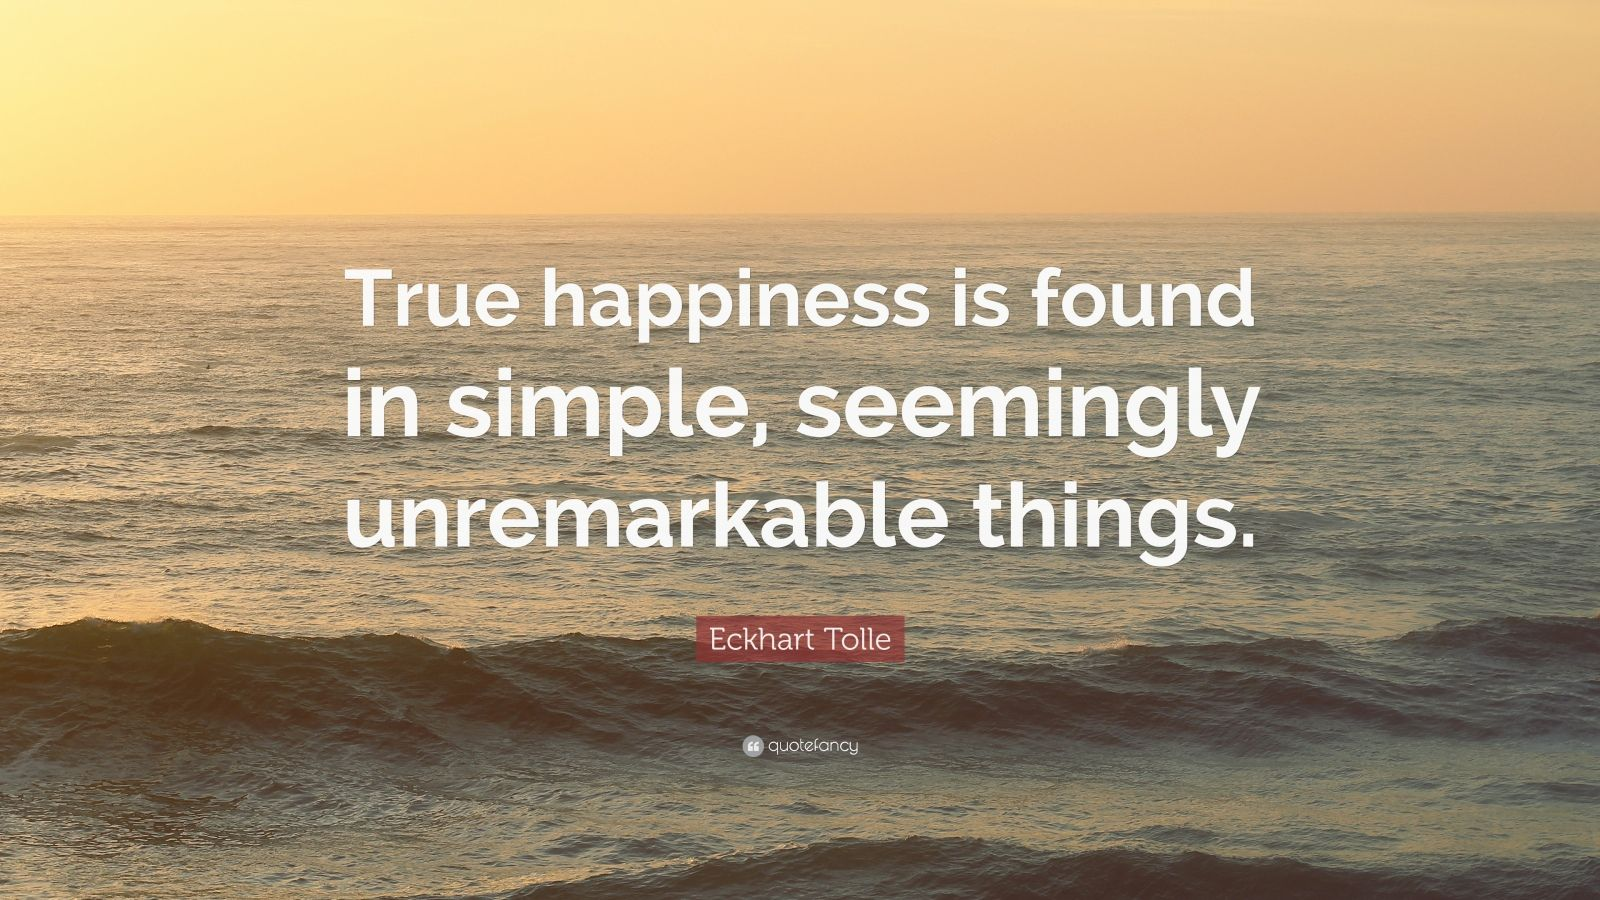 """Eckhart Tolle Quote: """"True happiness is found in simple, seemingly unremarkable things."""""""